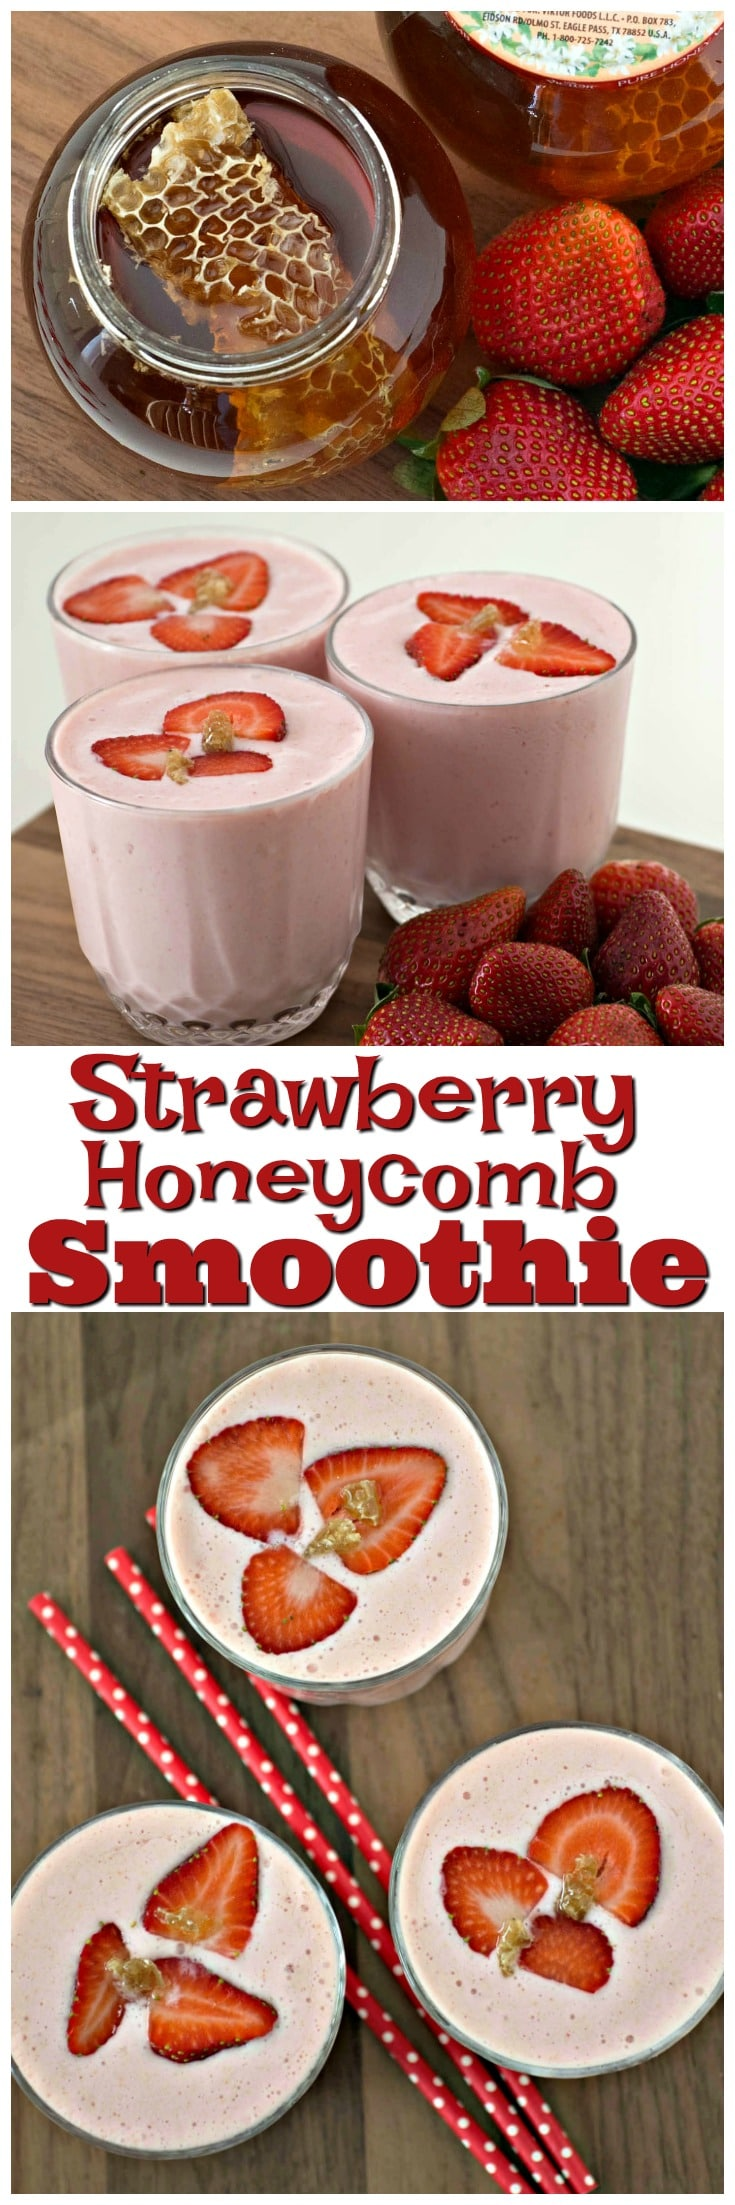 Strawberry Honeycomb Smoothie | Better for You Meals | Honeycomb Recipes | Light Snacks | Breakfast Smoothie | New Years Meals | Greek Yogurt Smoothie